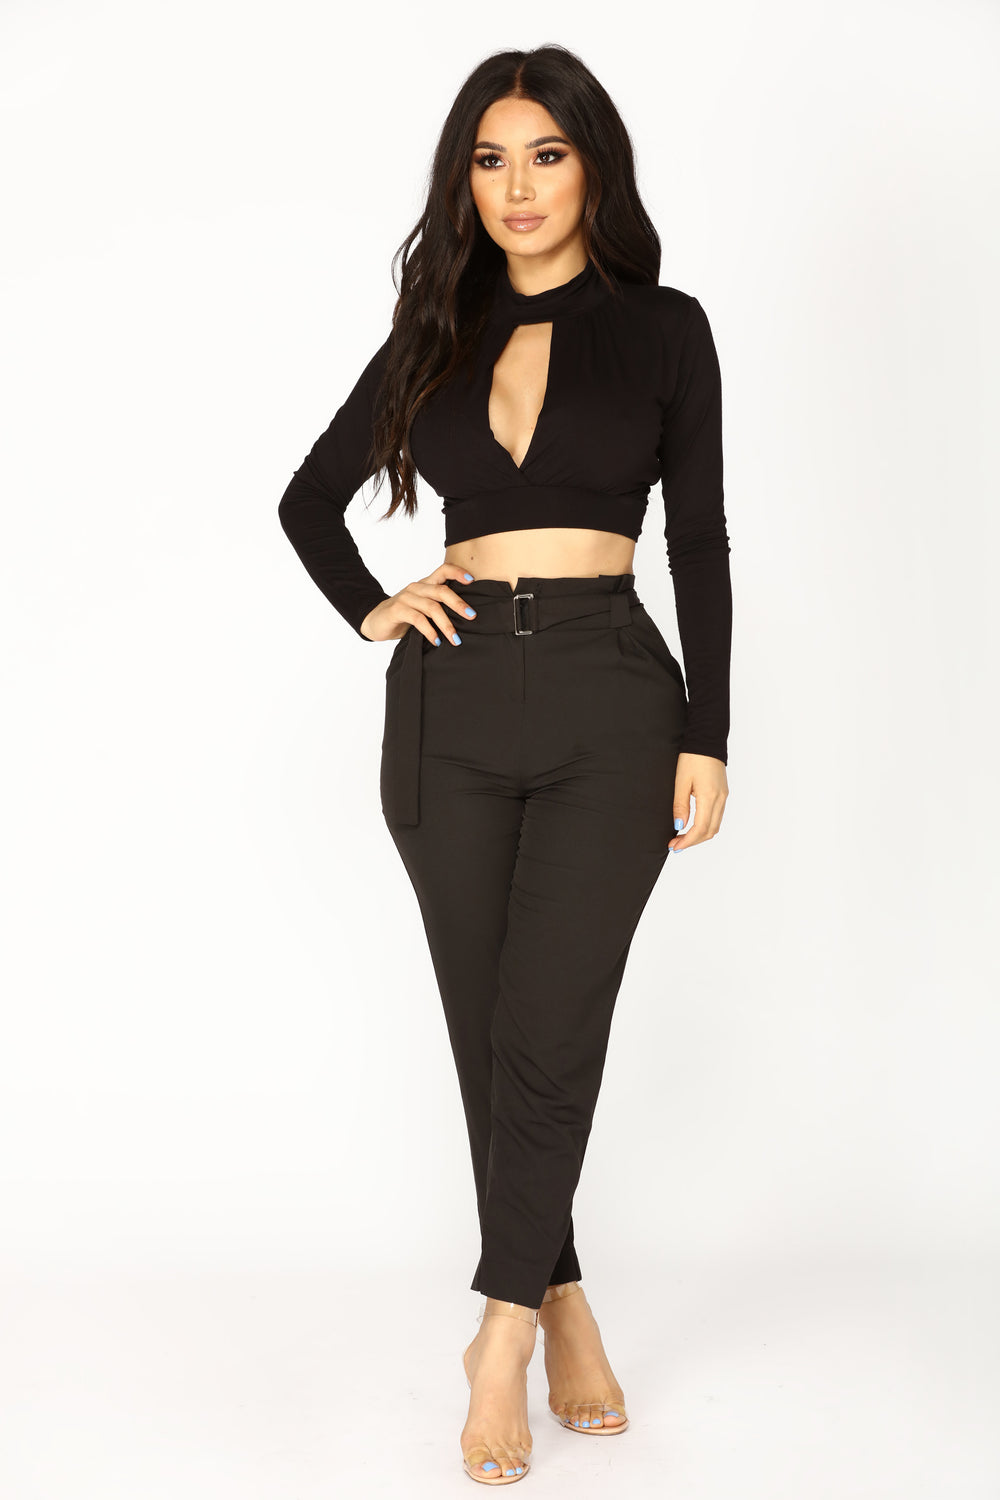 Aleeza Long Sleeve Top - Black